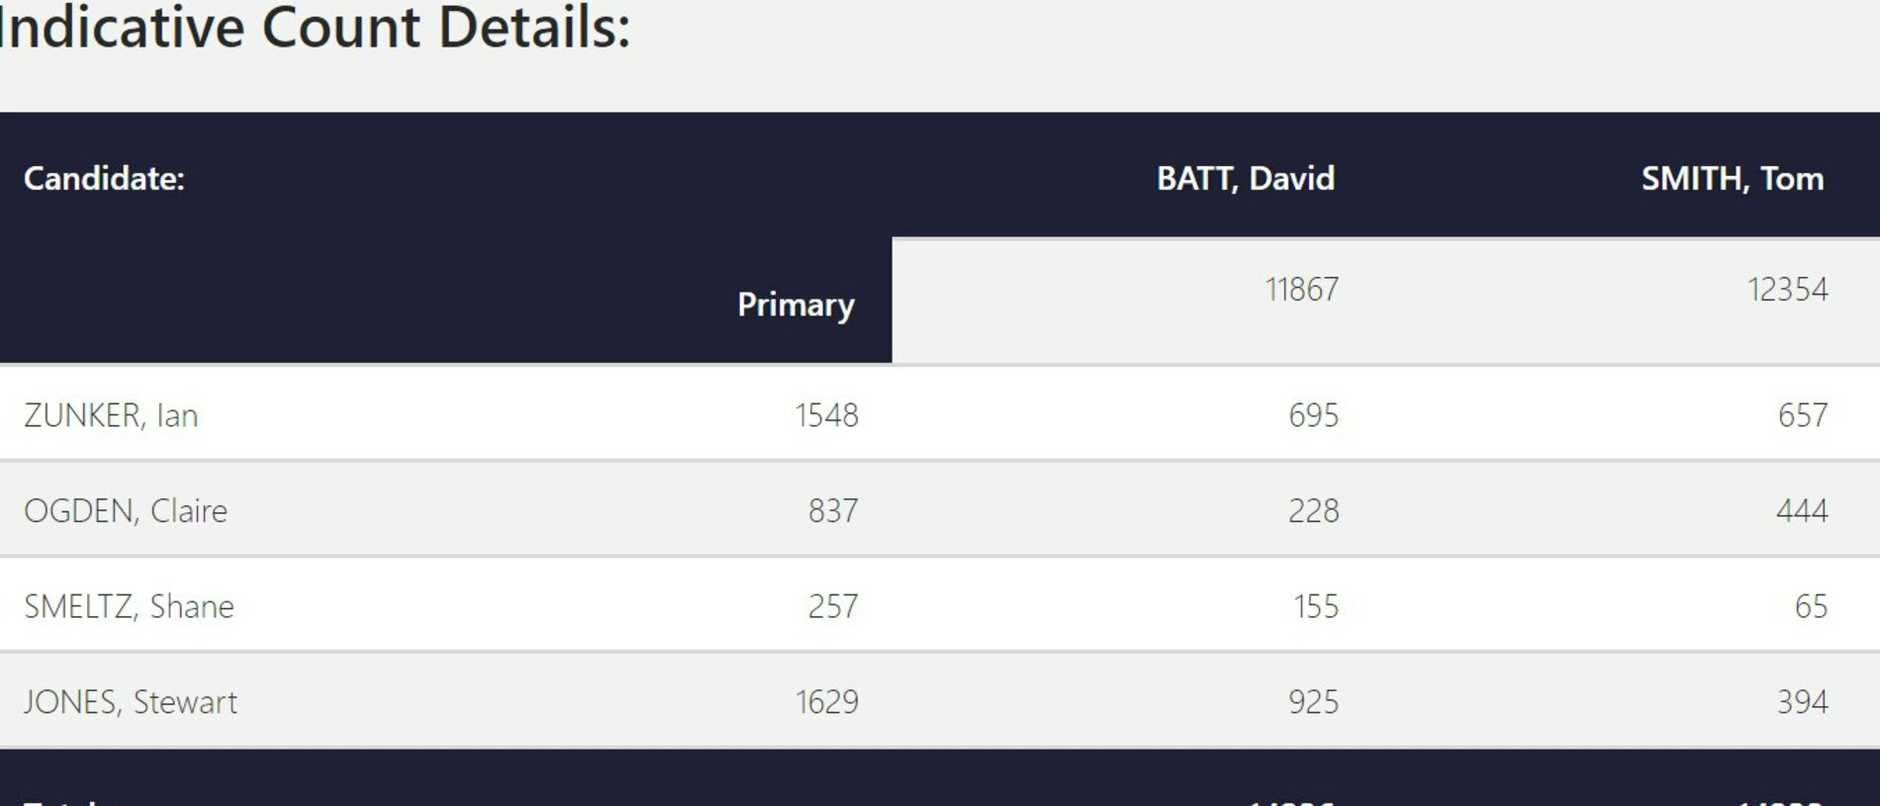 Incumbent MP David Batt has just edged out in front of Labor candidate Tom Smith as votes for the seat of Bundaberg continue to be counted.